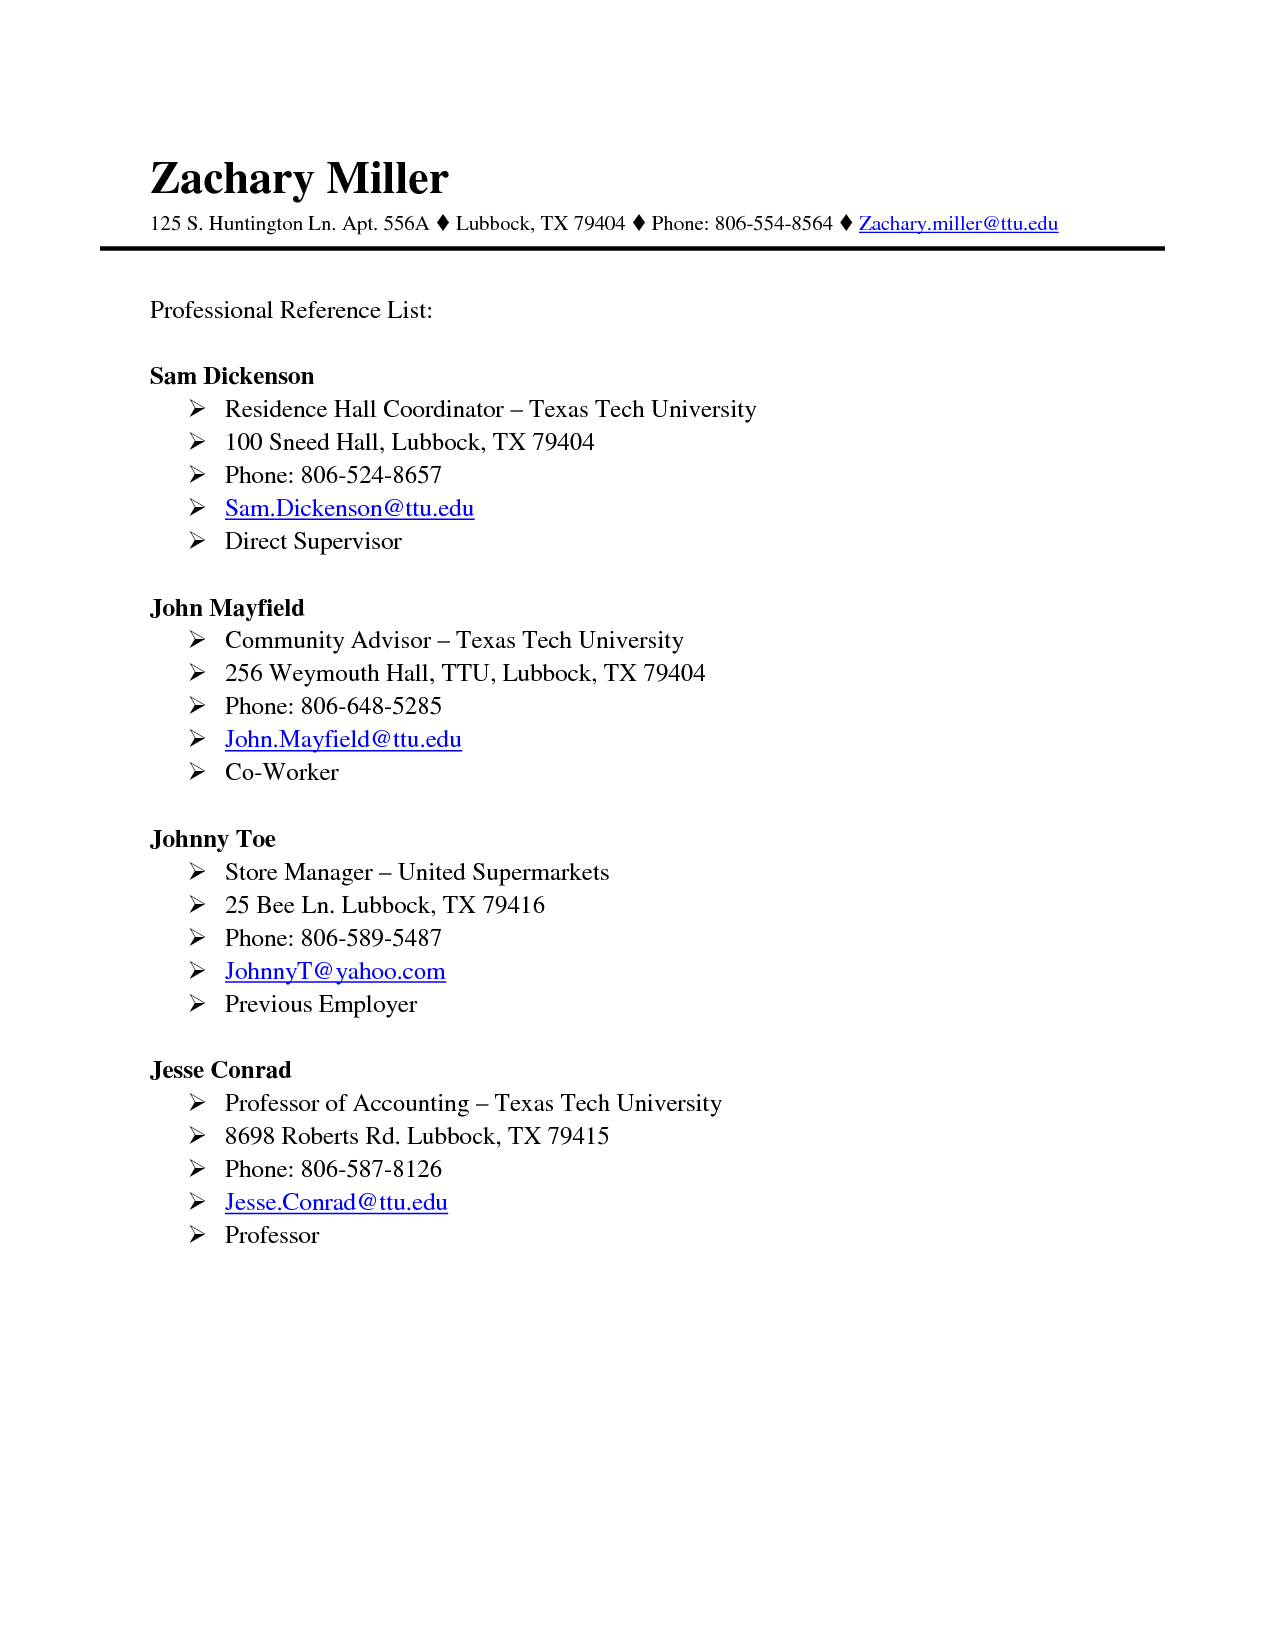 Sample Reference List template of an agenda – Reference List Template